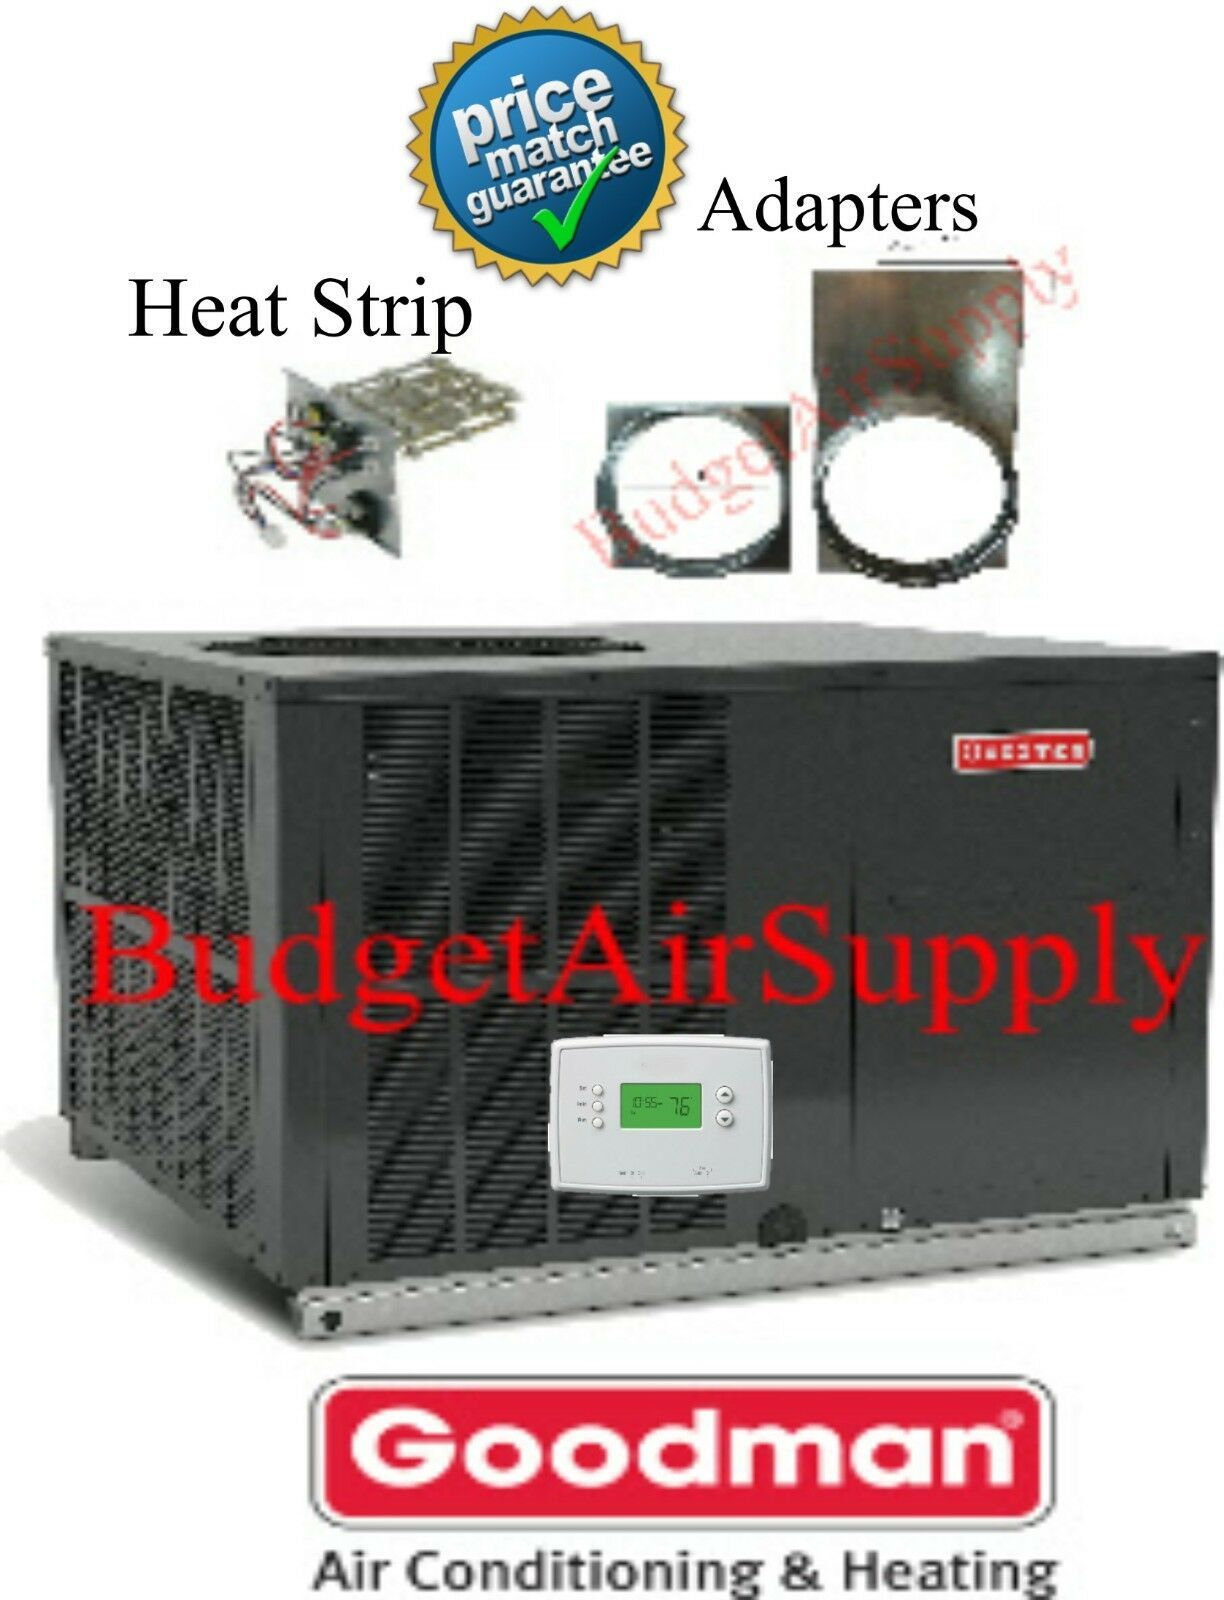 3 Ton Package Unit In 2020 The Unit Packaging Heating And Air Conditioning